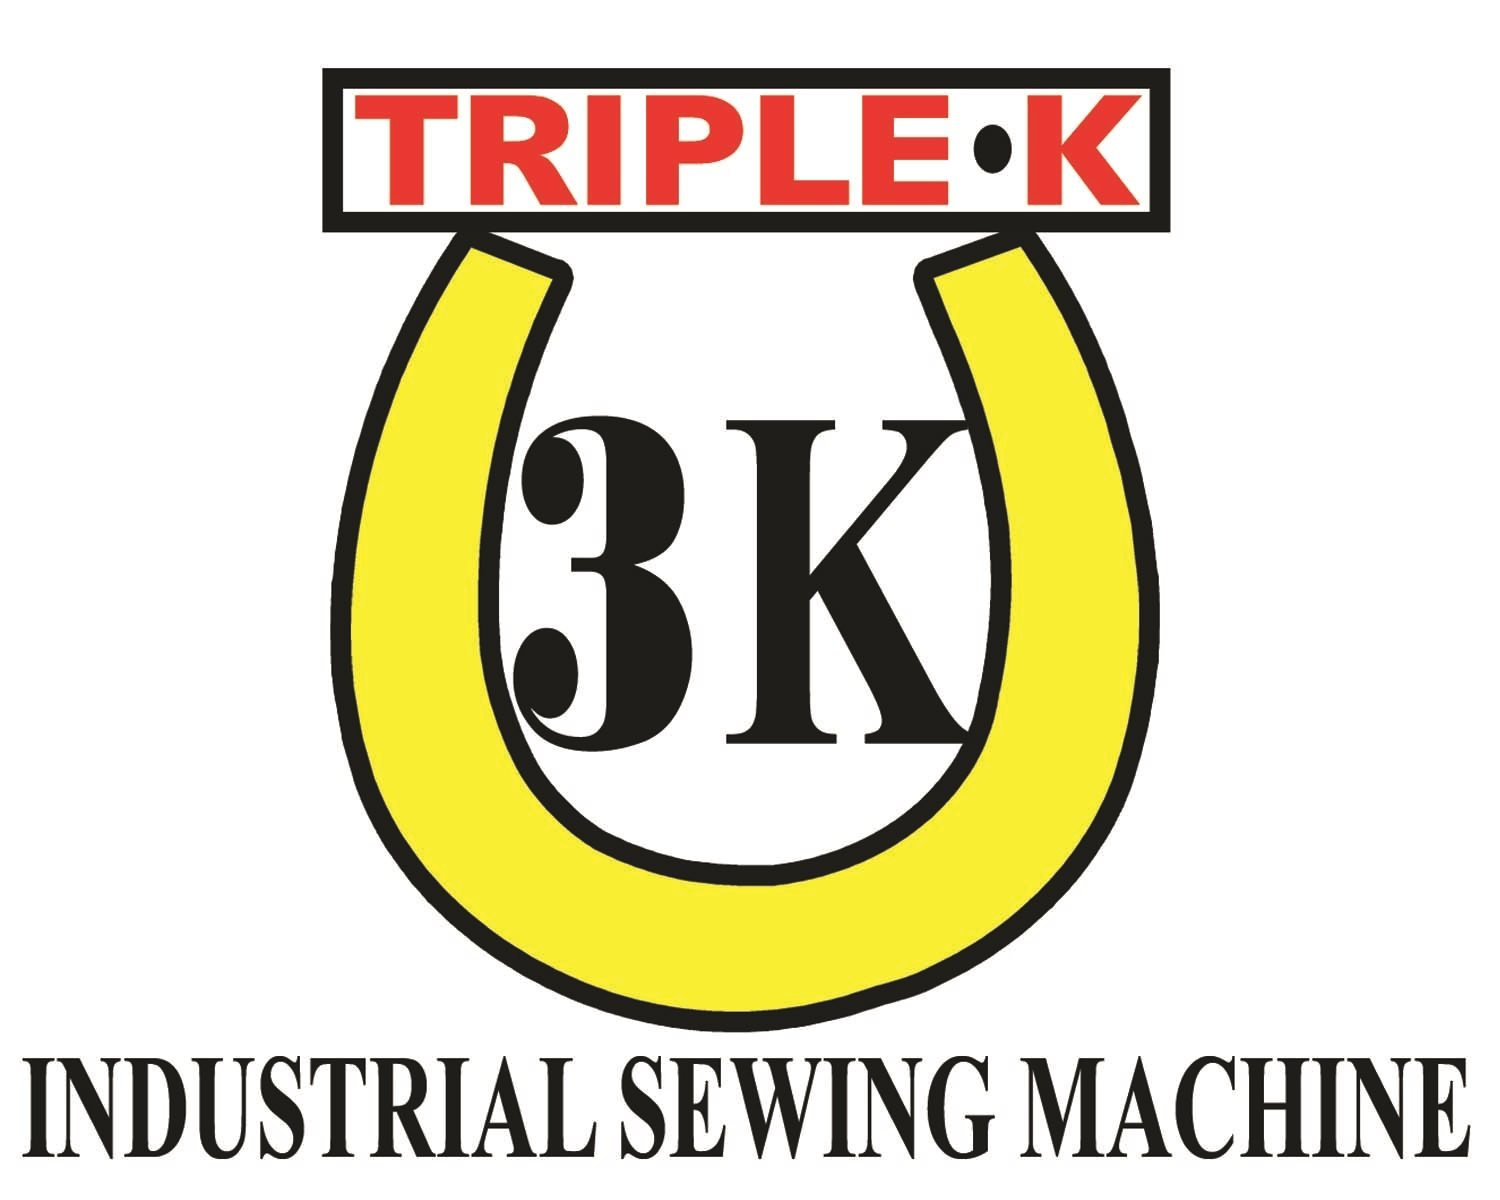 D' Triple K Industrial Sewing Machines & Accessories Place